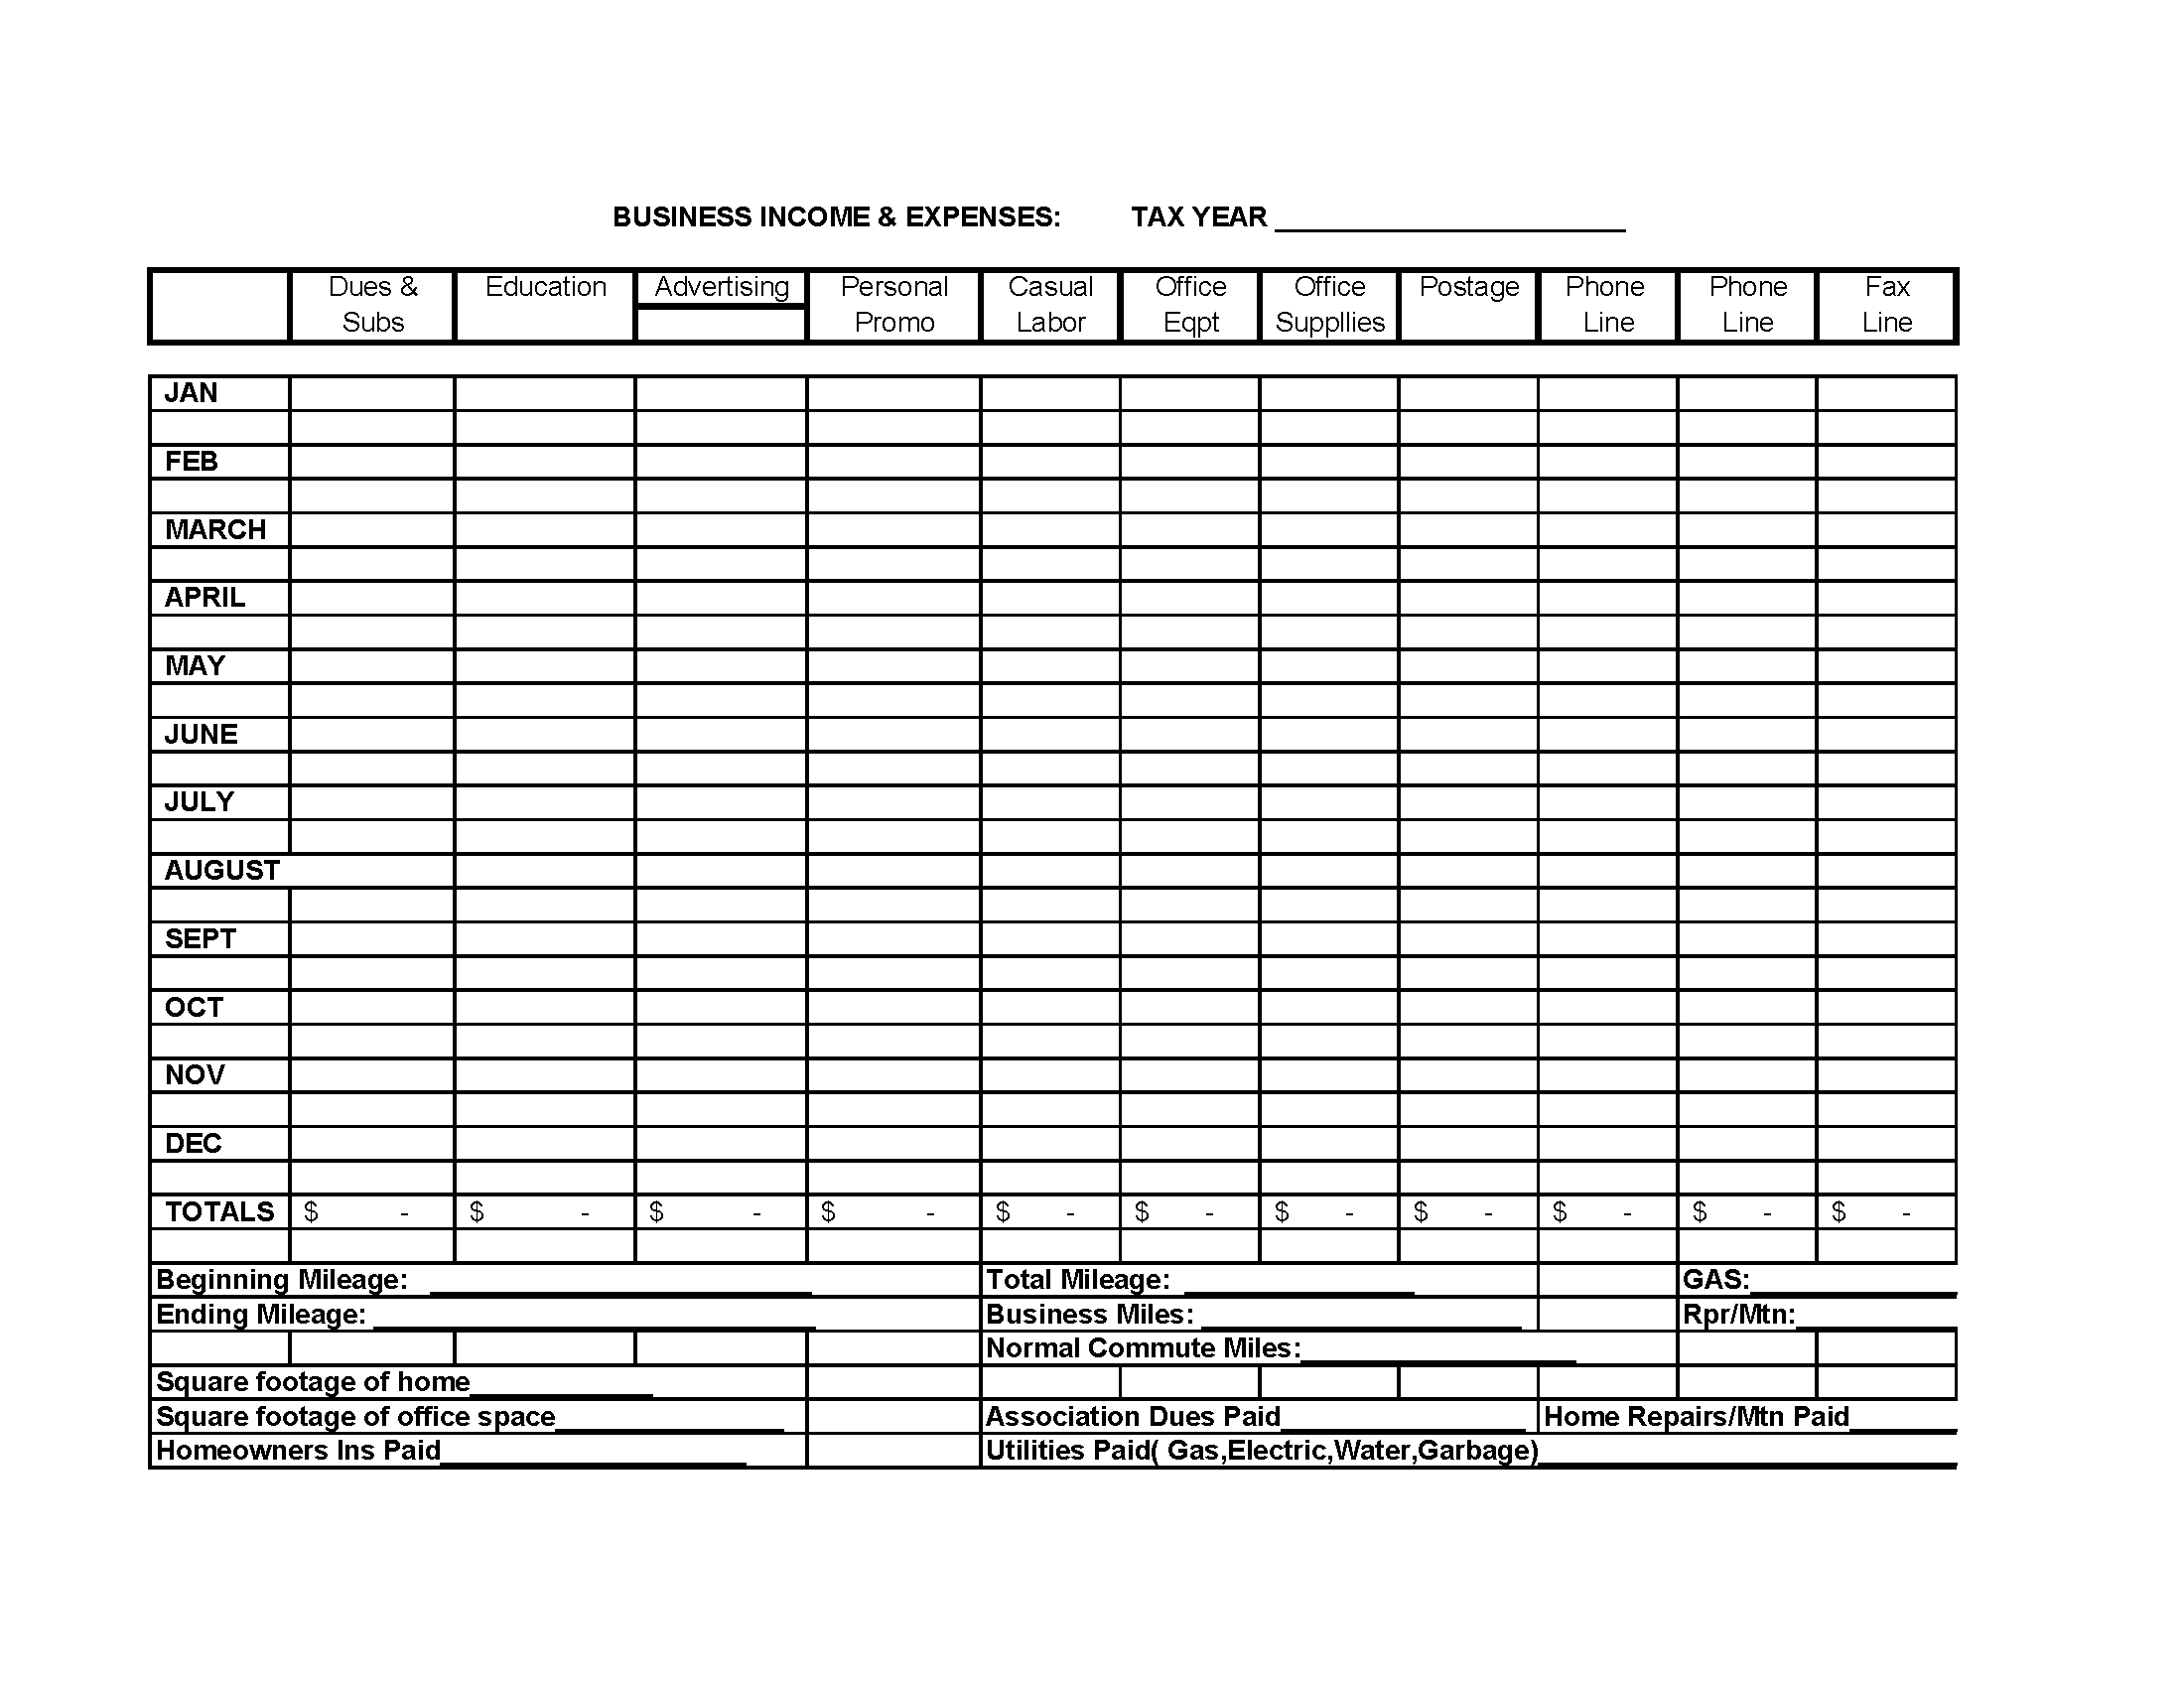 Business Income Expense Spreadsheet Template | Business | Pinterest ...